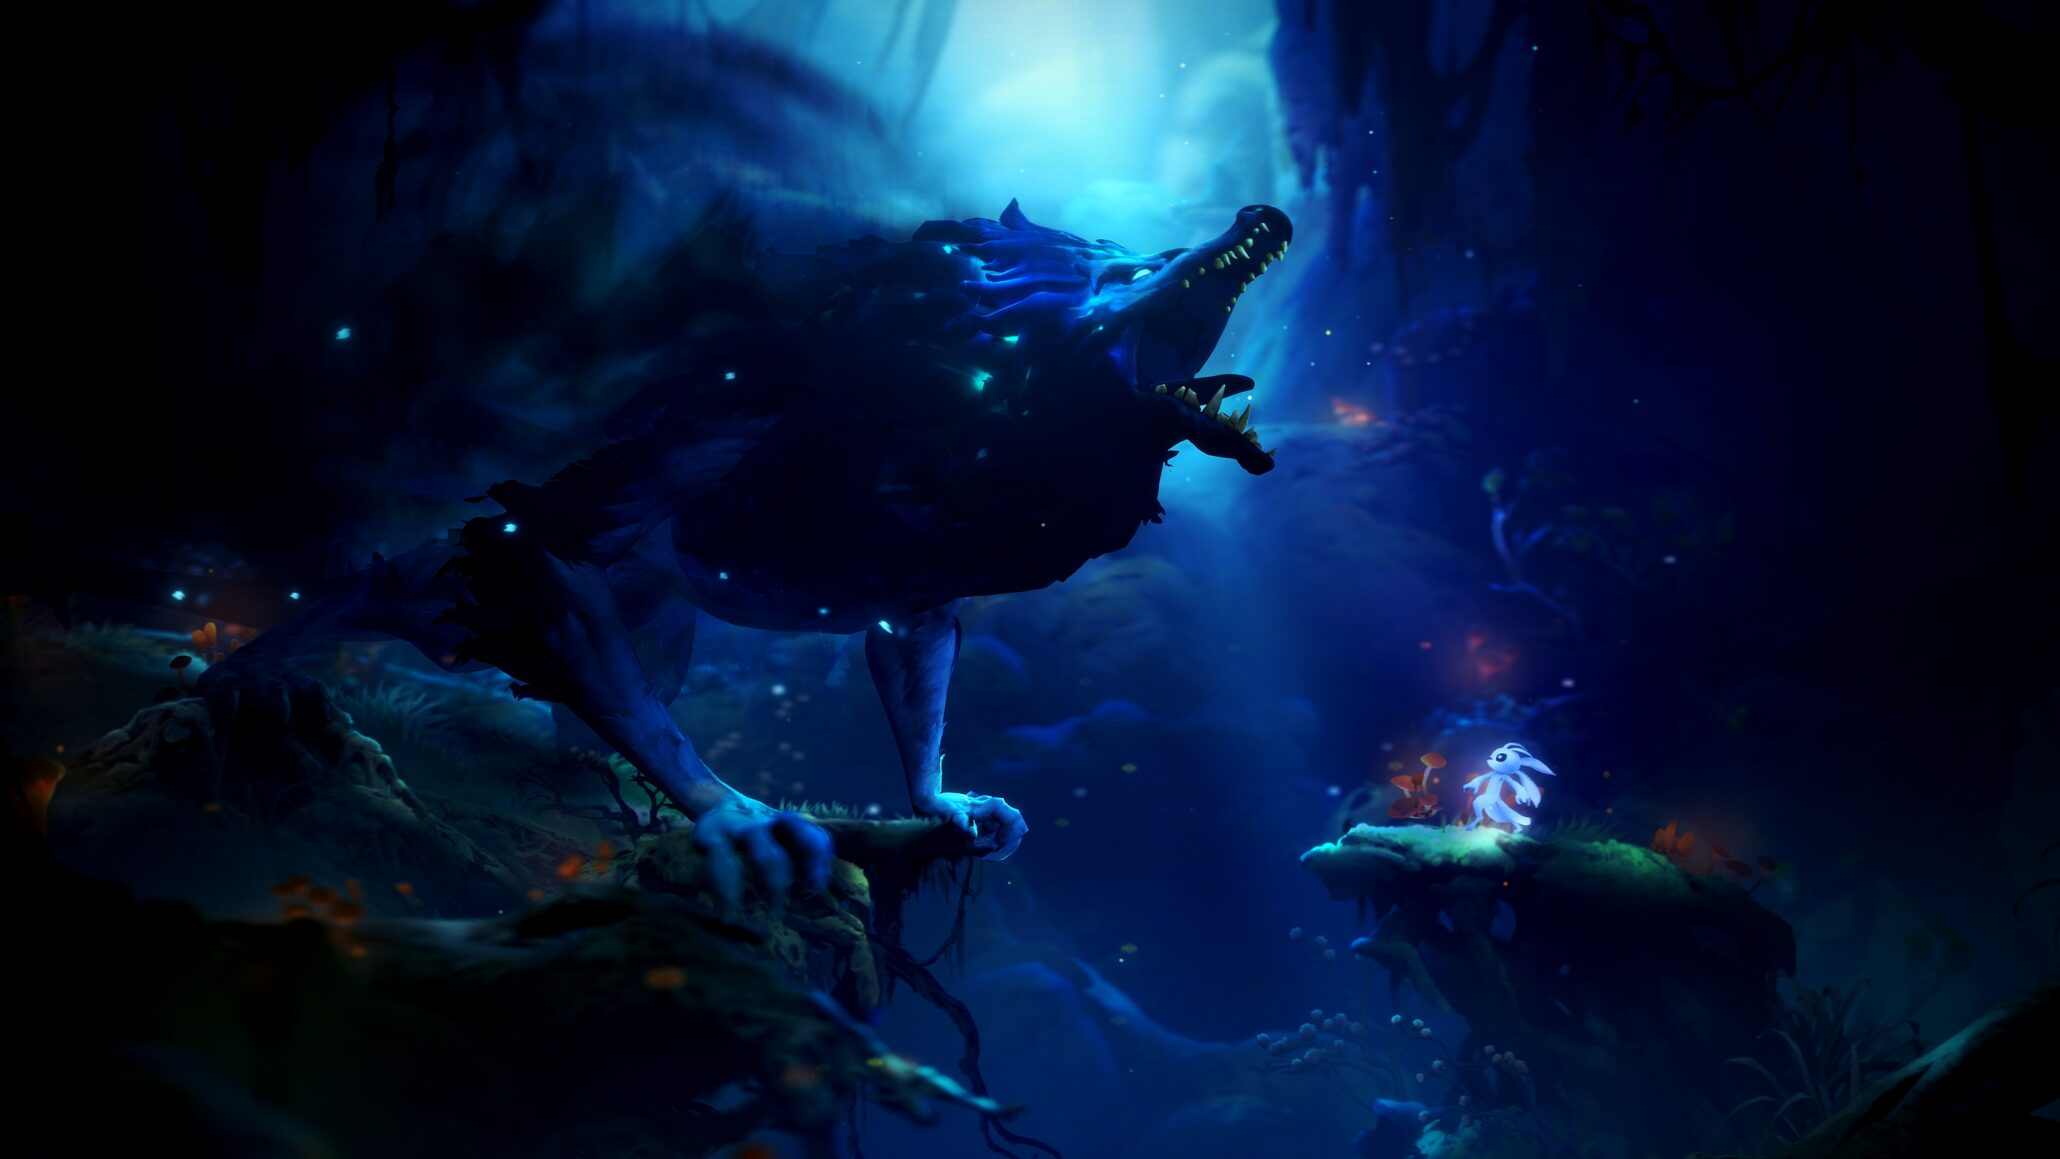 Ori and the Will of the Wisps Features Dynamic Lighting and